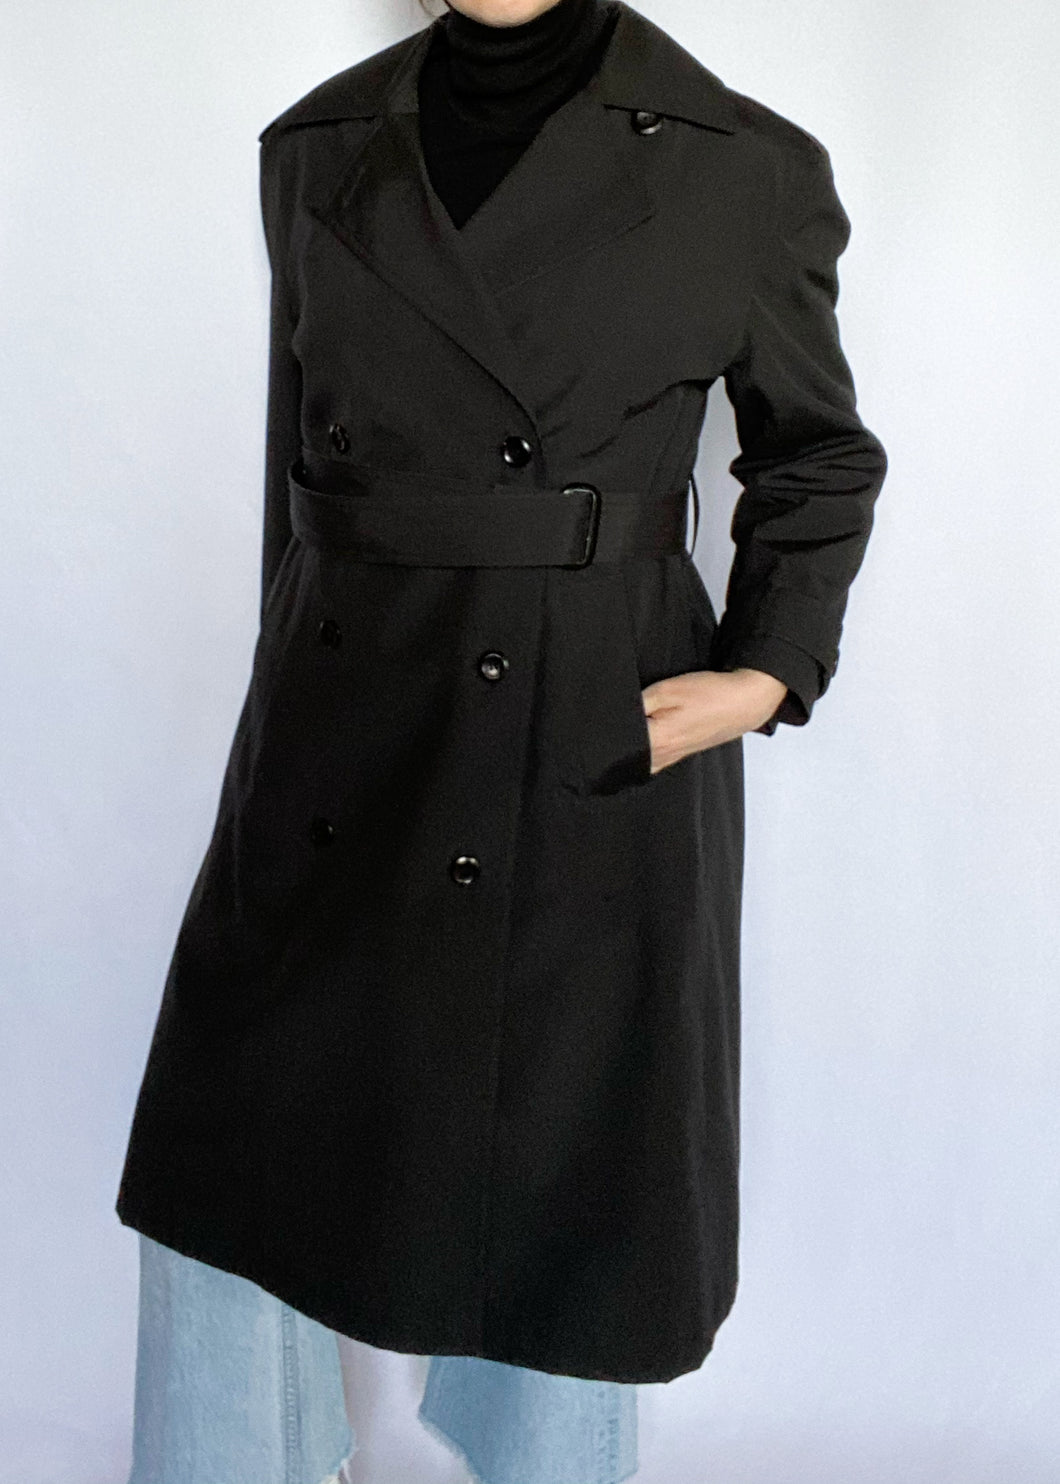 Black London Fog Trench Coat